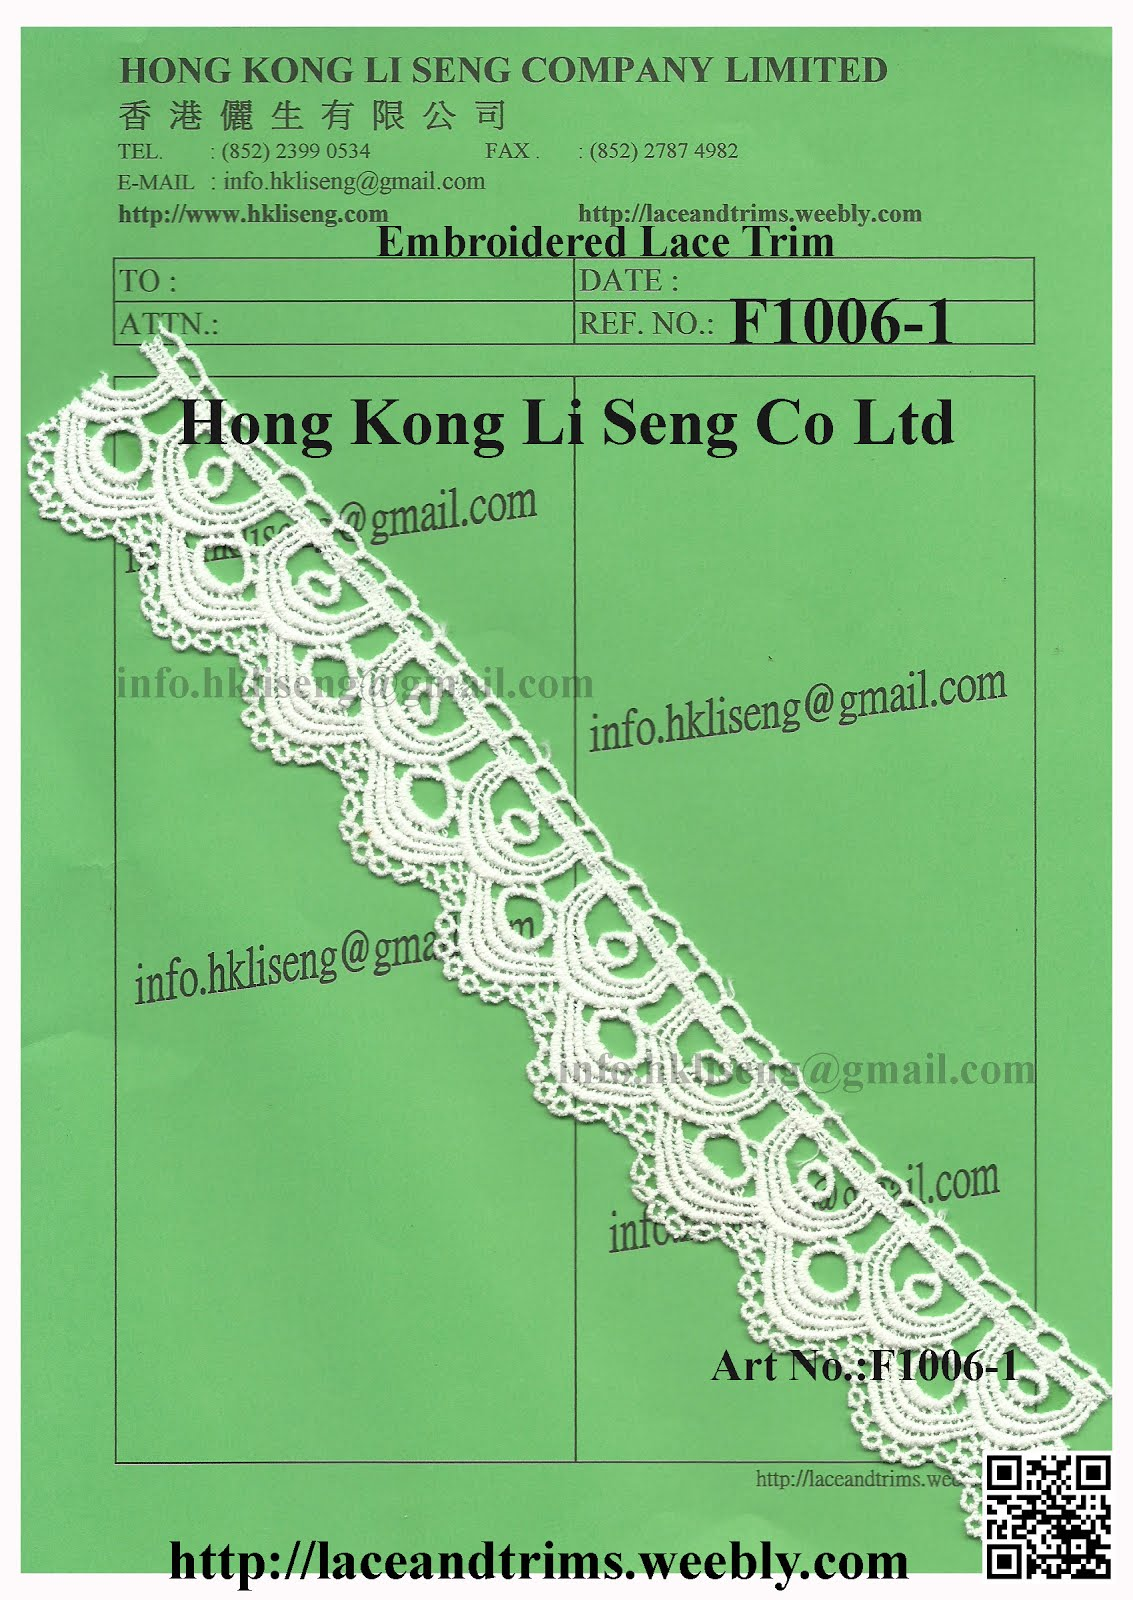 Embroidered Lace Trim Wholesale Manufacturer and Supplier